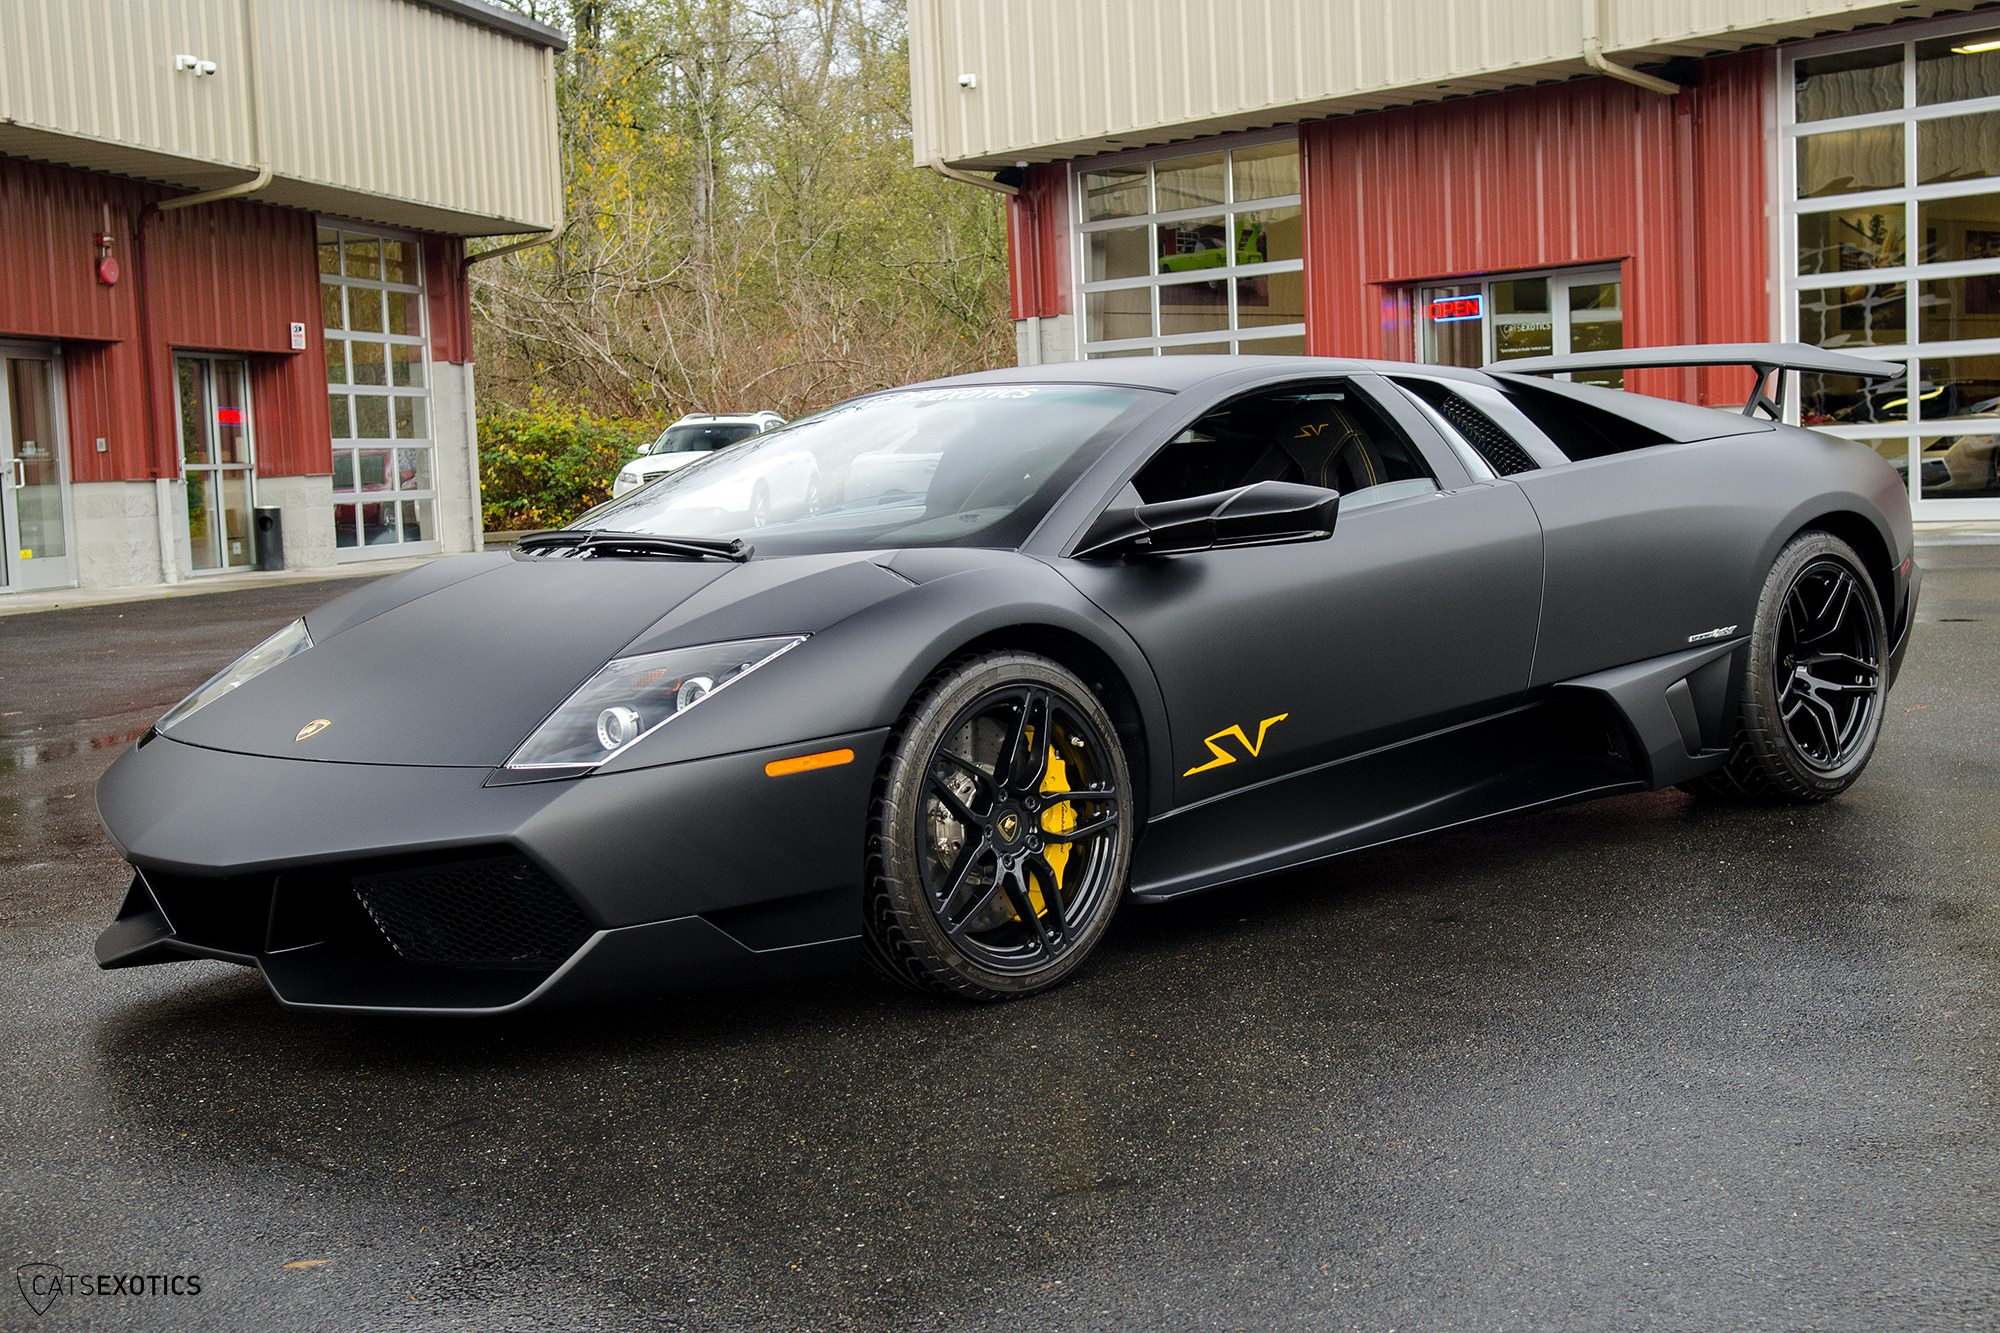 Nero Nemesis Lamborghini Murcielago Sv For Sale At